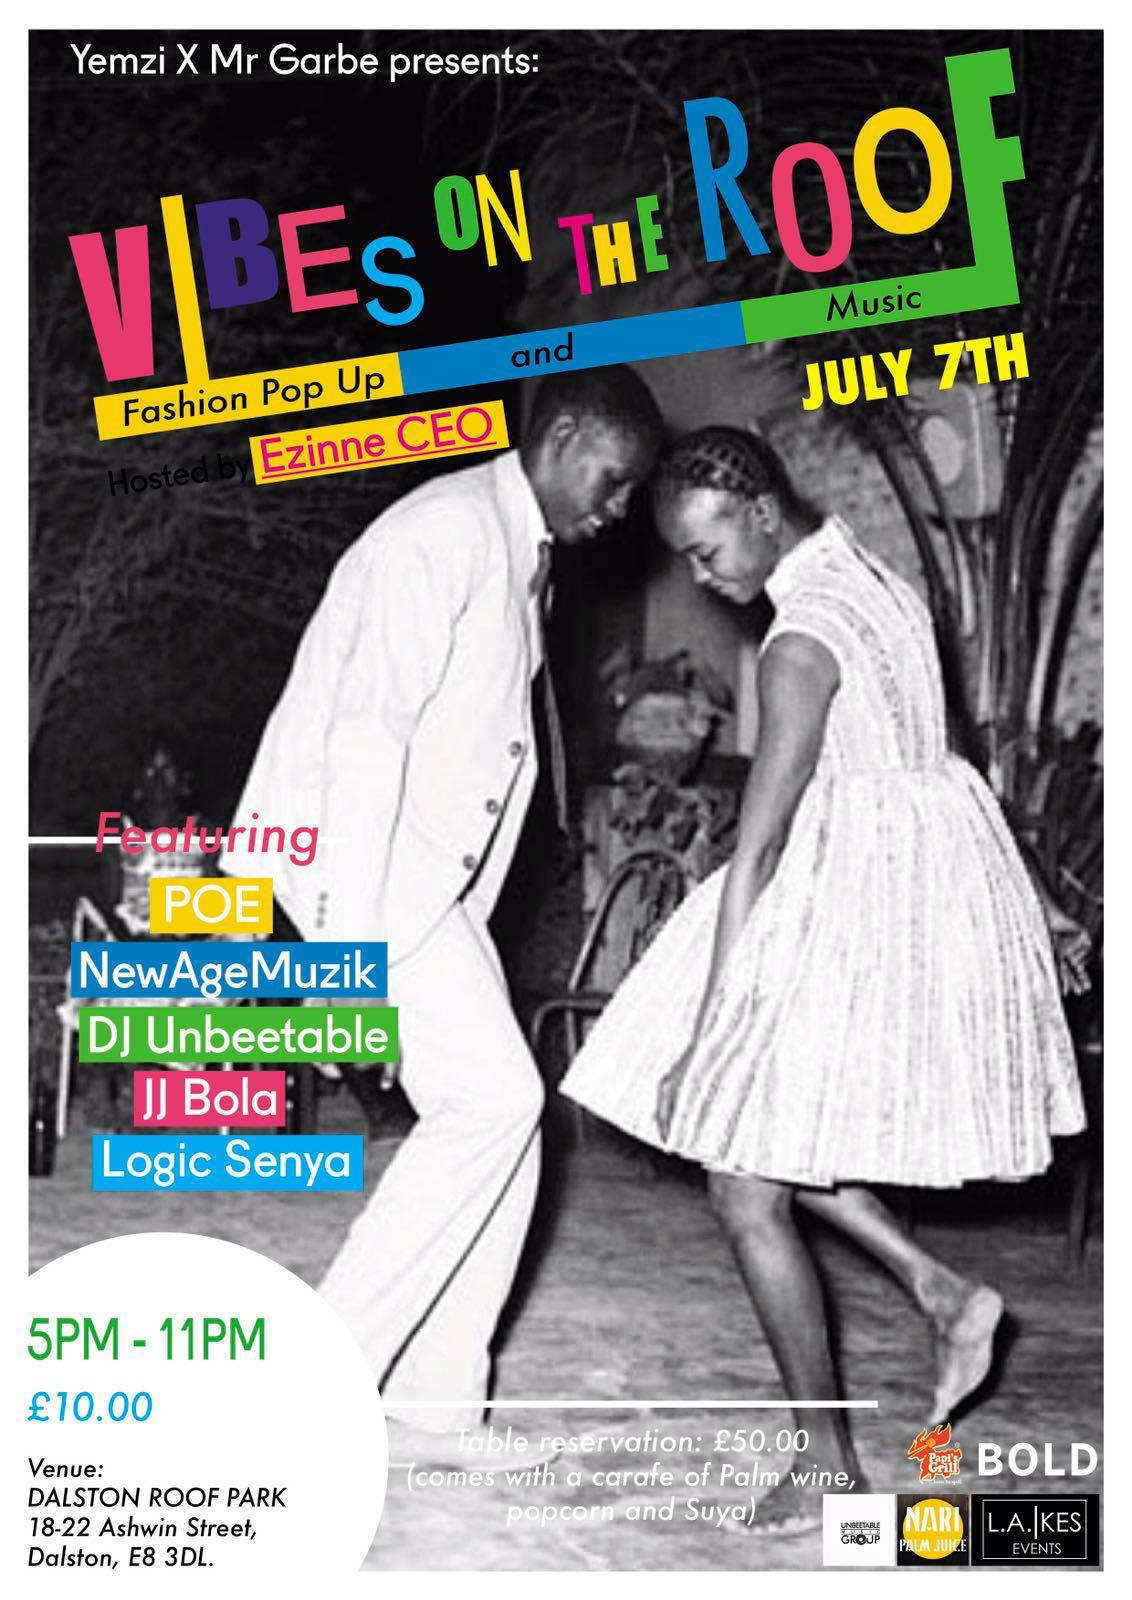 Vibes On The Roof - Fashion and Music - July 7th